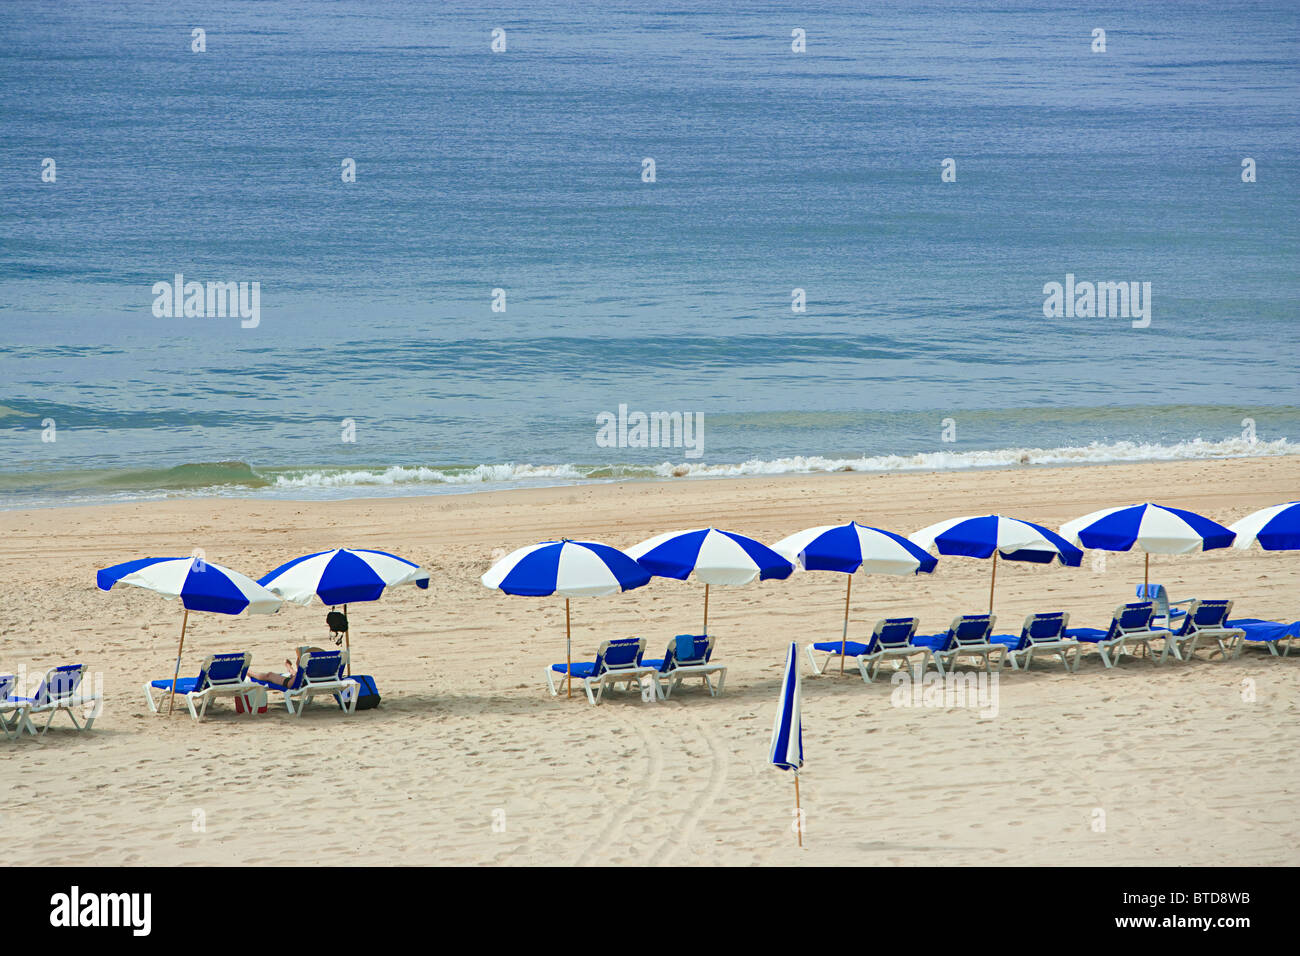 long island summer lounge stockfotos long island summer lounge bilder alamy. Black Bedroom Furniture Sets. Home Design Ideas